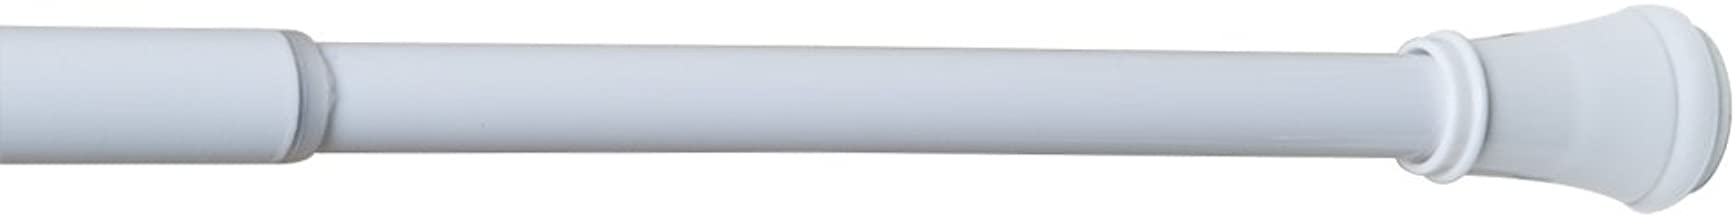 MAYTEX Smart Rods Superior Hold Tension Window Curtain Rod, 28-48-Inch, White